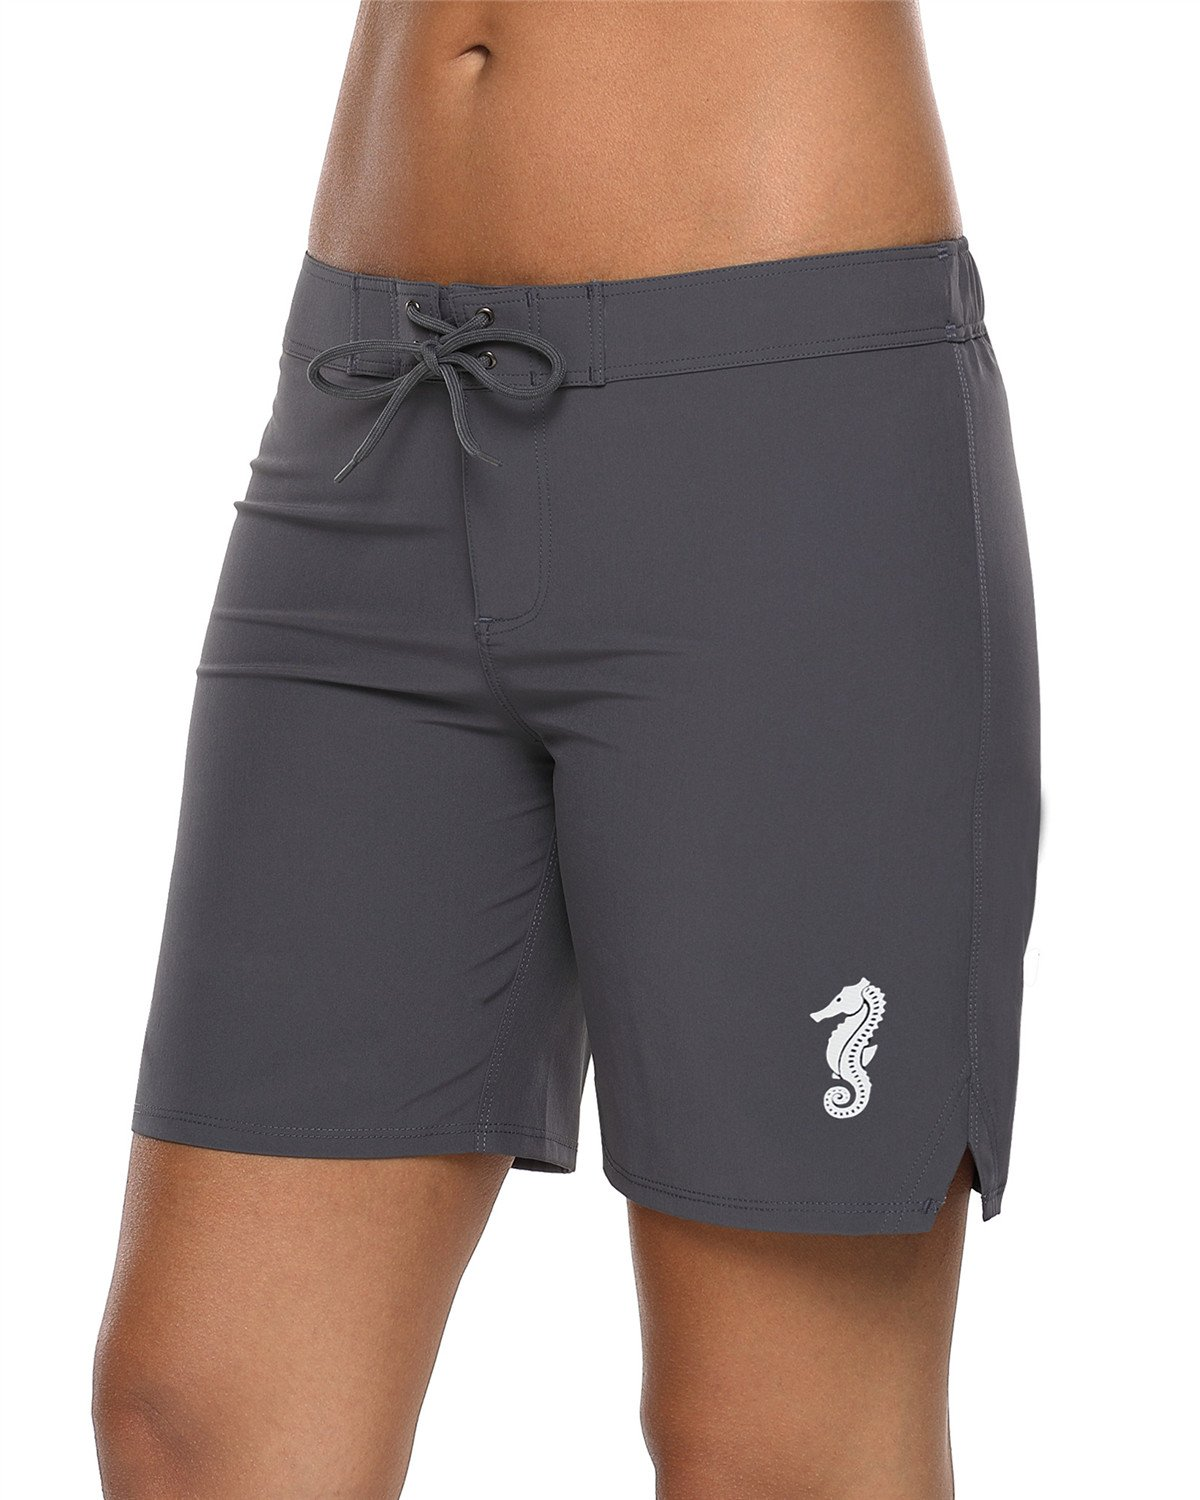 Maysoul Women Board Shorts Swimming Shorts Beach Swim Trunks Quick Drying Grey XXXL